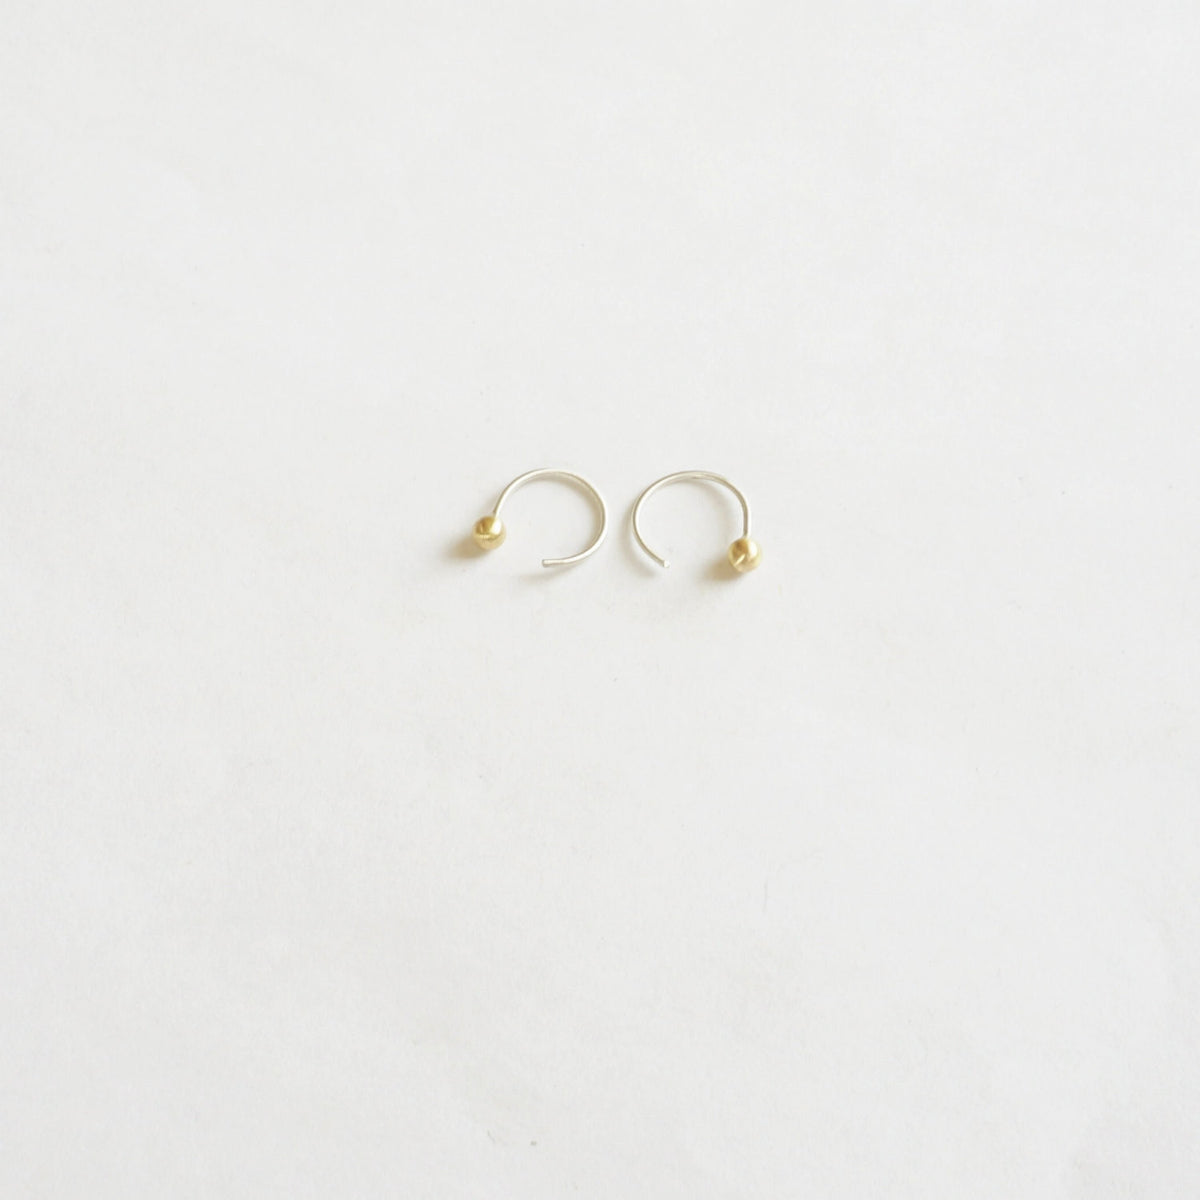 Distinctive Hand-Made Tiny Ear Hugging Sterling Silver Hoops With Ball On End - 0209 - Virginia Wynne Designs